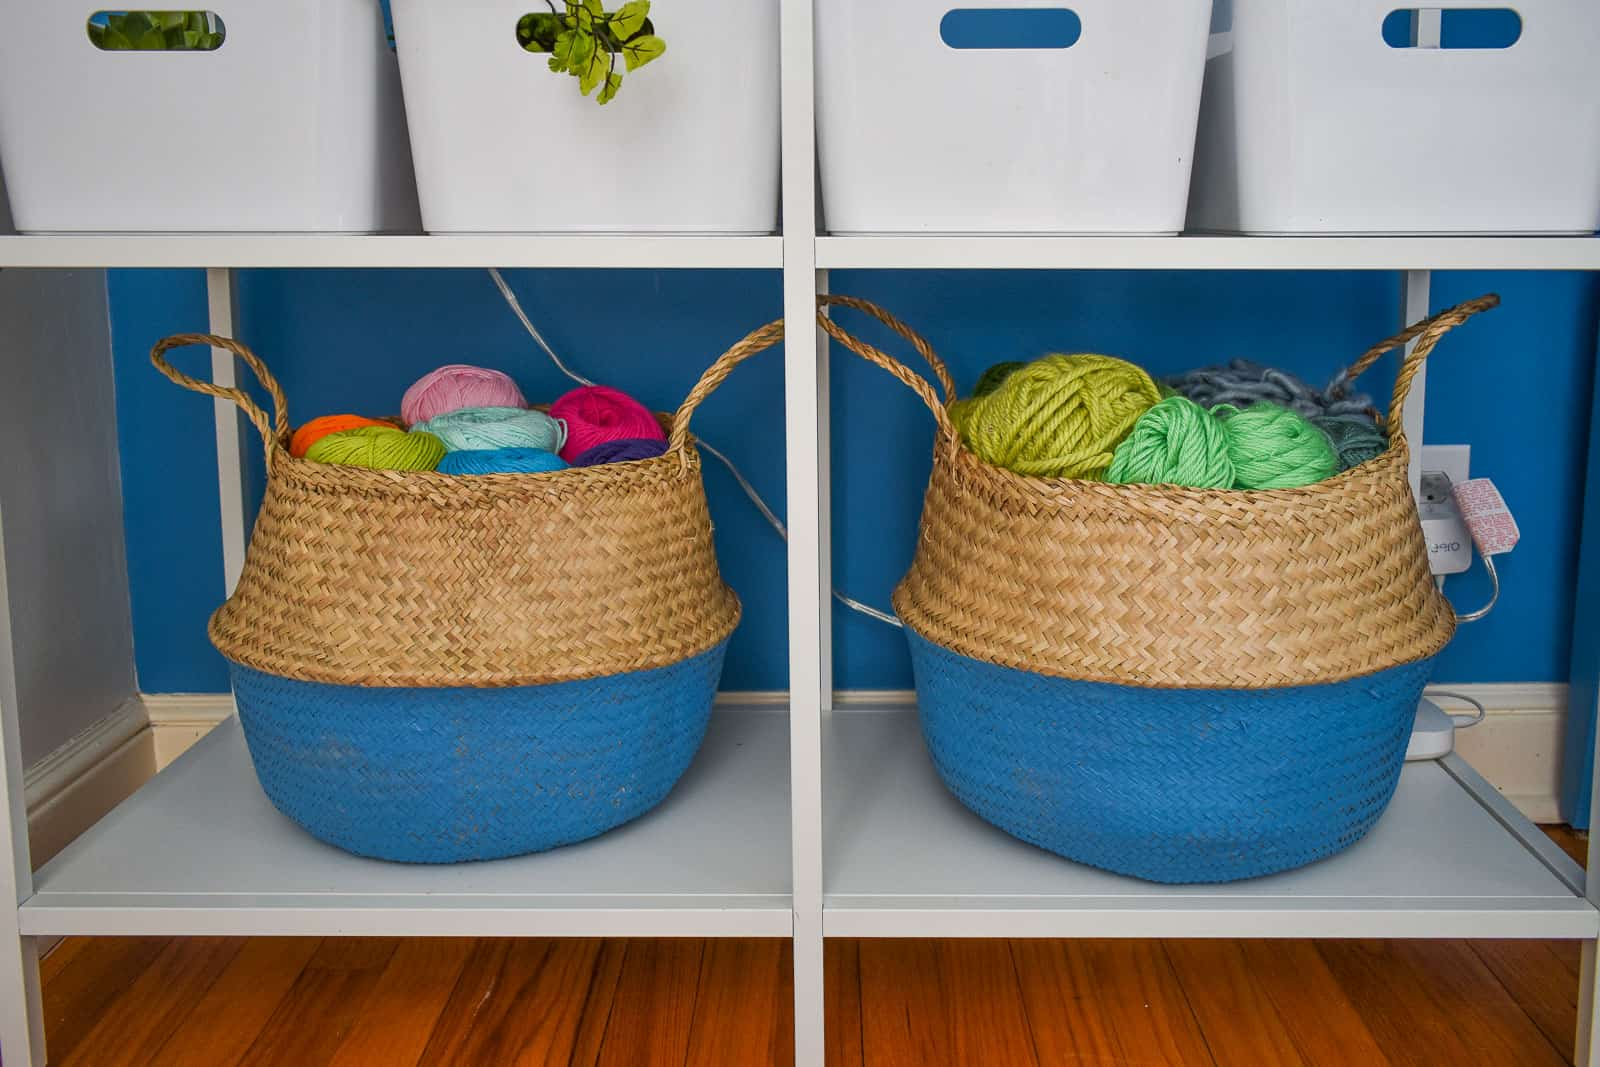 painted storage baskets in colorful office